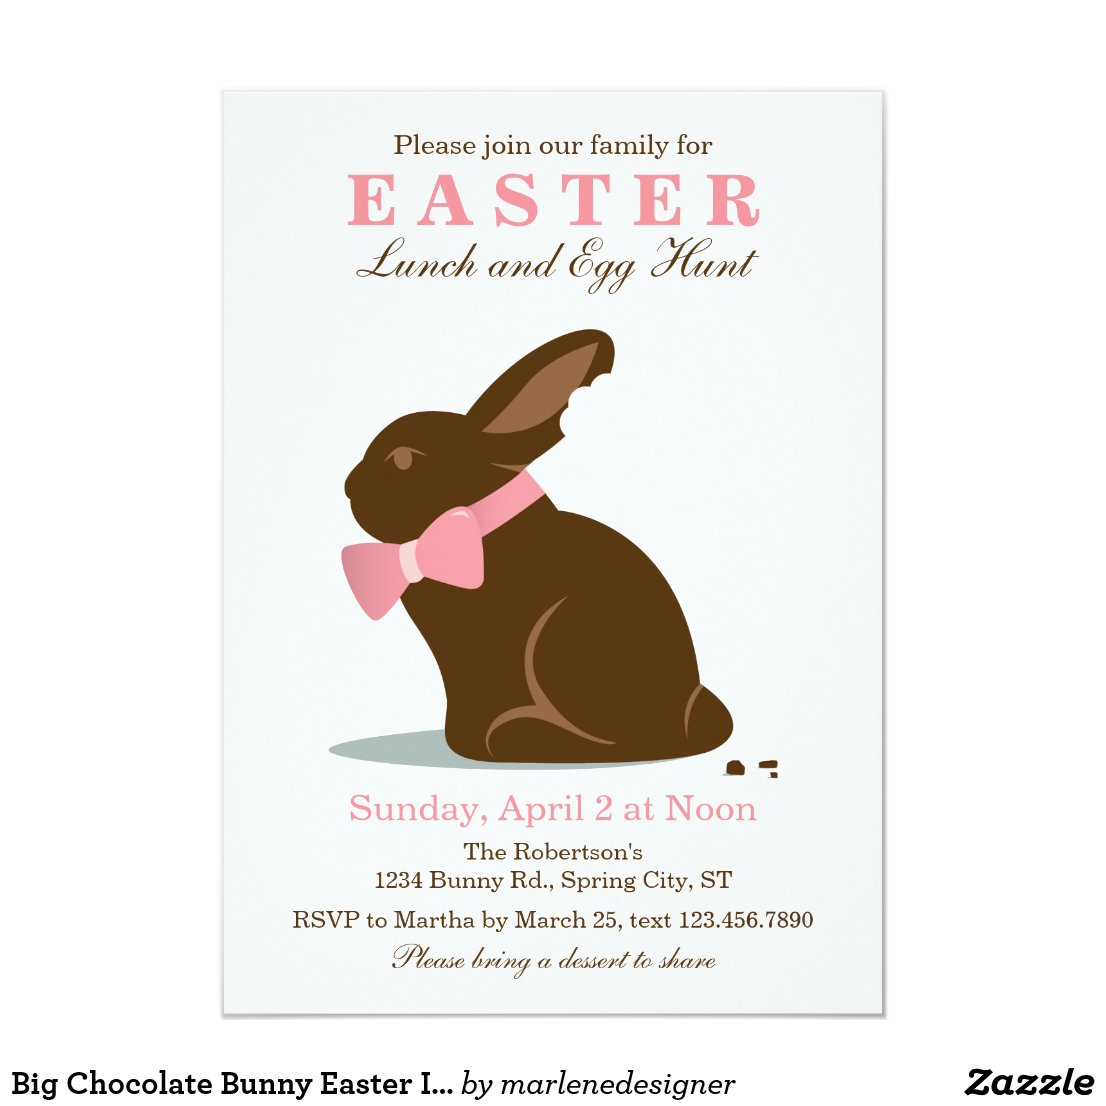 Big Chocolate Bunny Easter Invitation